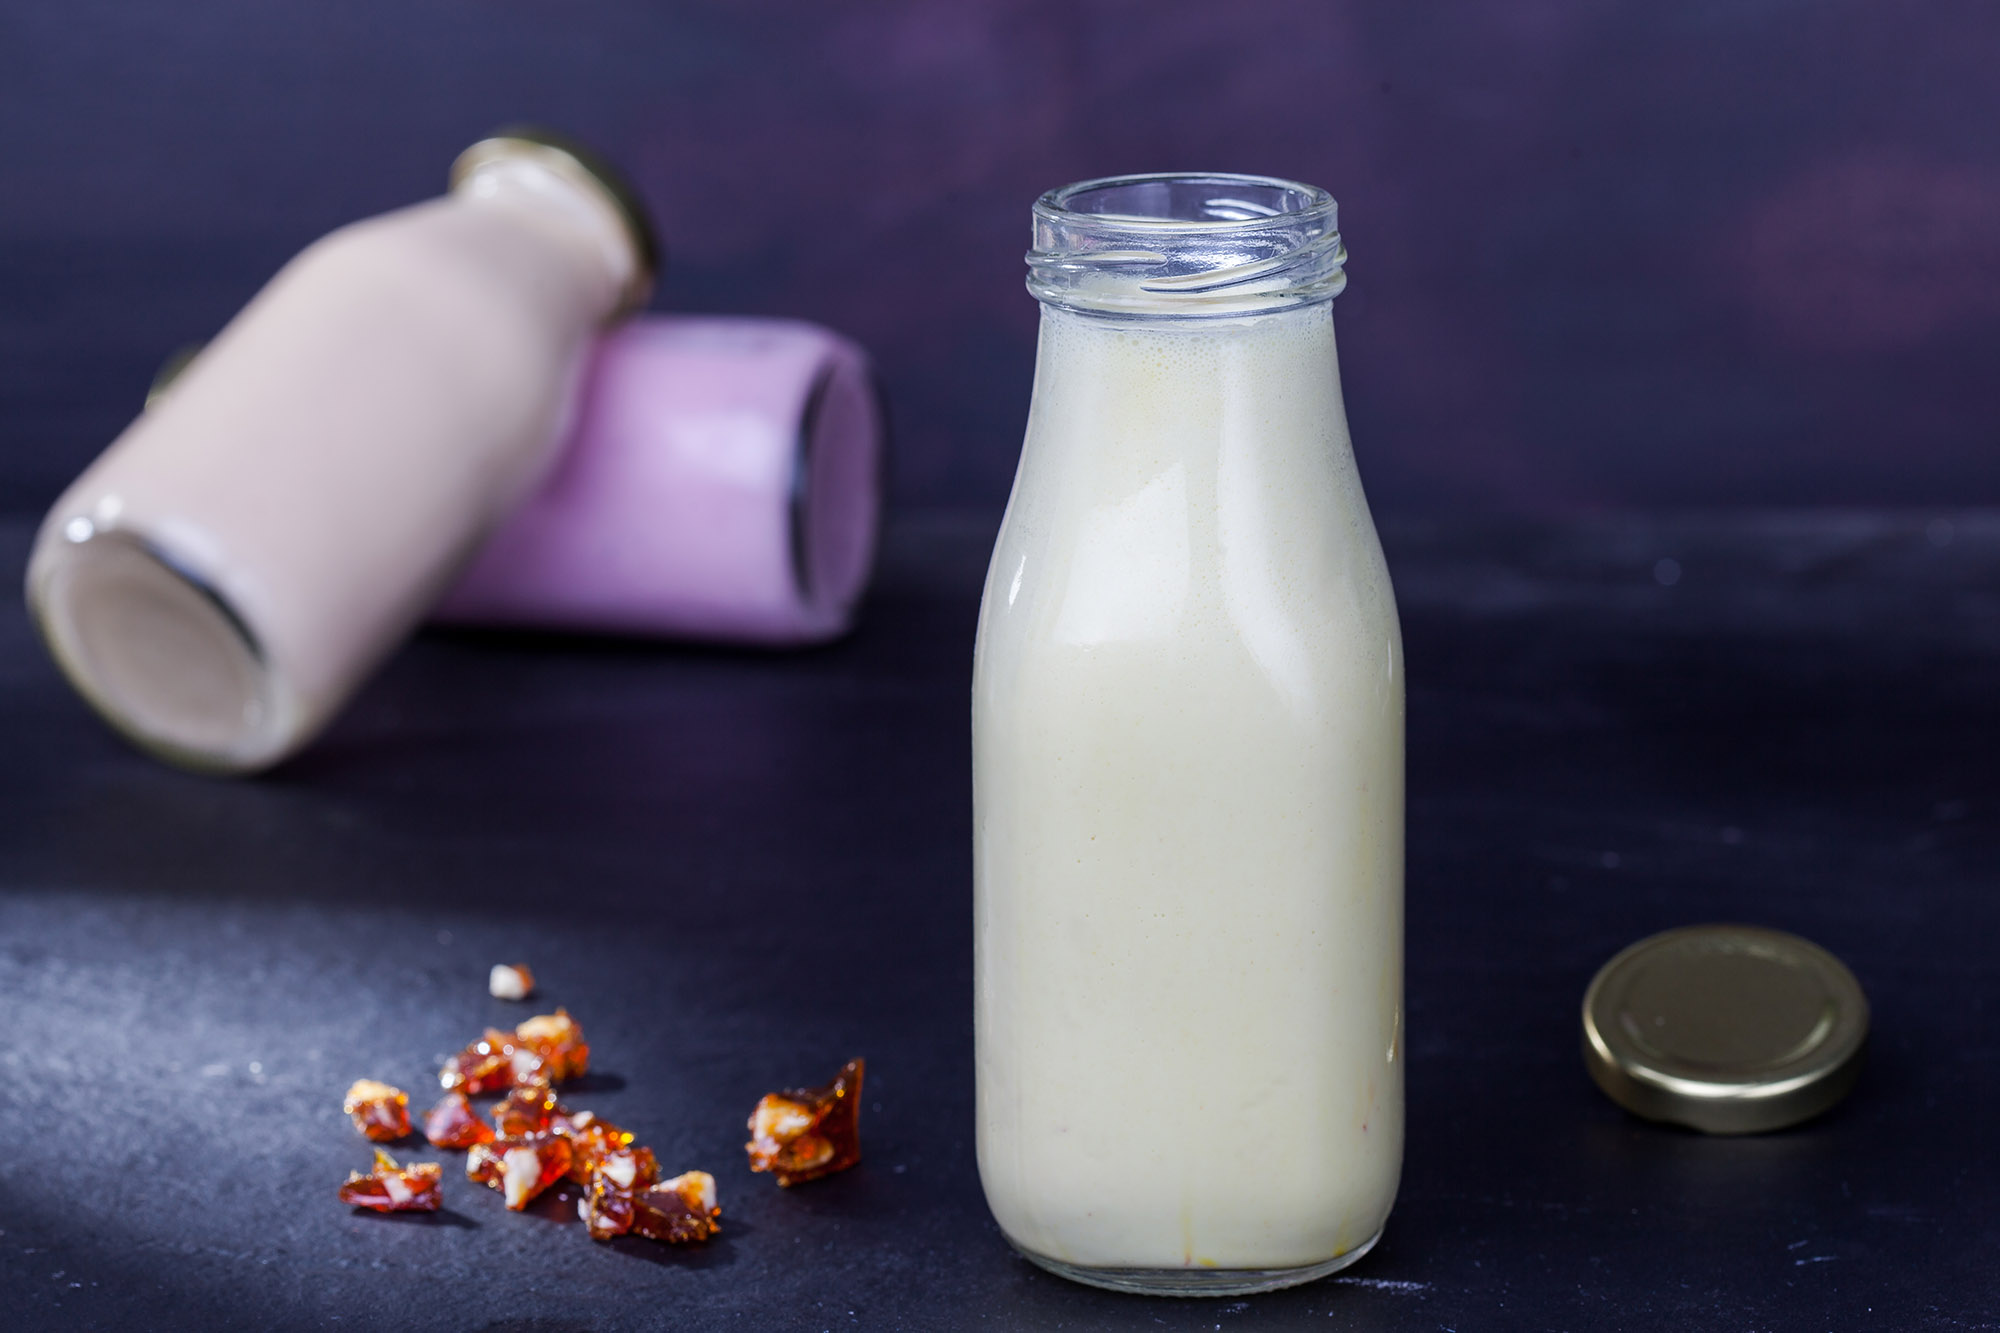 PEANUT-BANANA SMOOTHIE - Smooth peanut-butter and fresh bananas are blended with ice-cream, yogurt, and milk to create a hearty, flavoursome smoothie that's absolutely delicious!